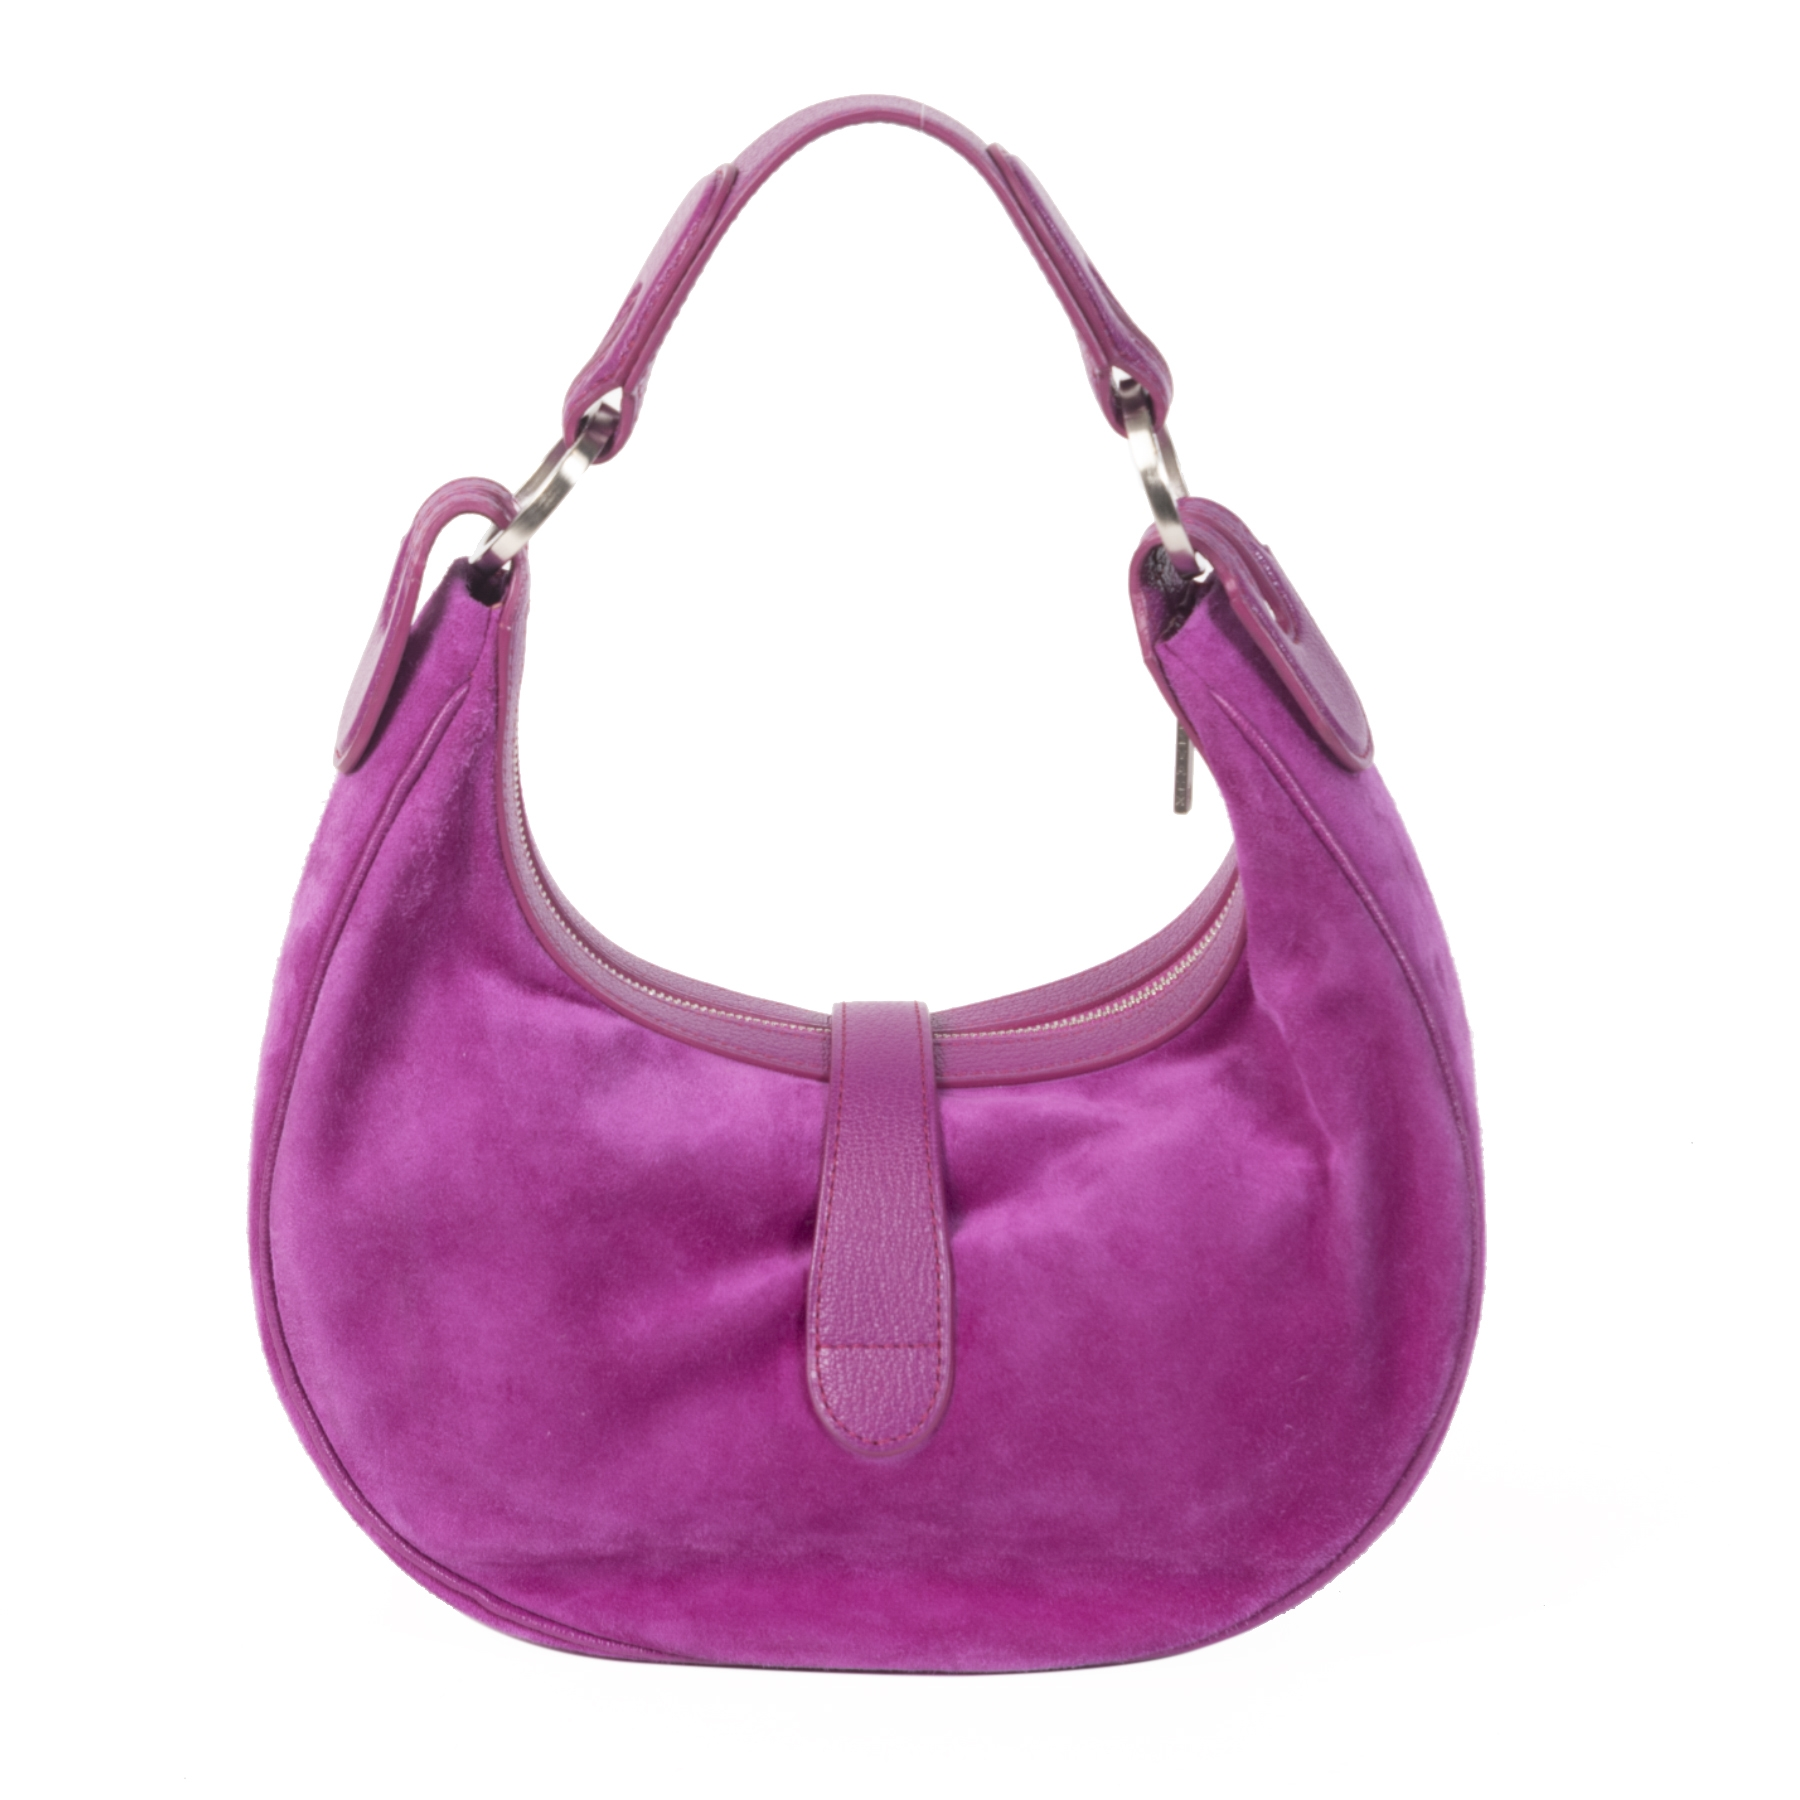 Authentic second-hand vintage Delvaux Camille XS Suede Fuchsia buy online webshop LabelLOV